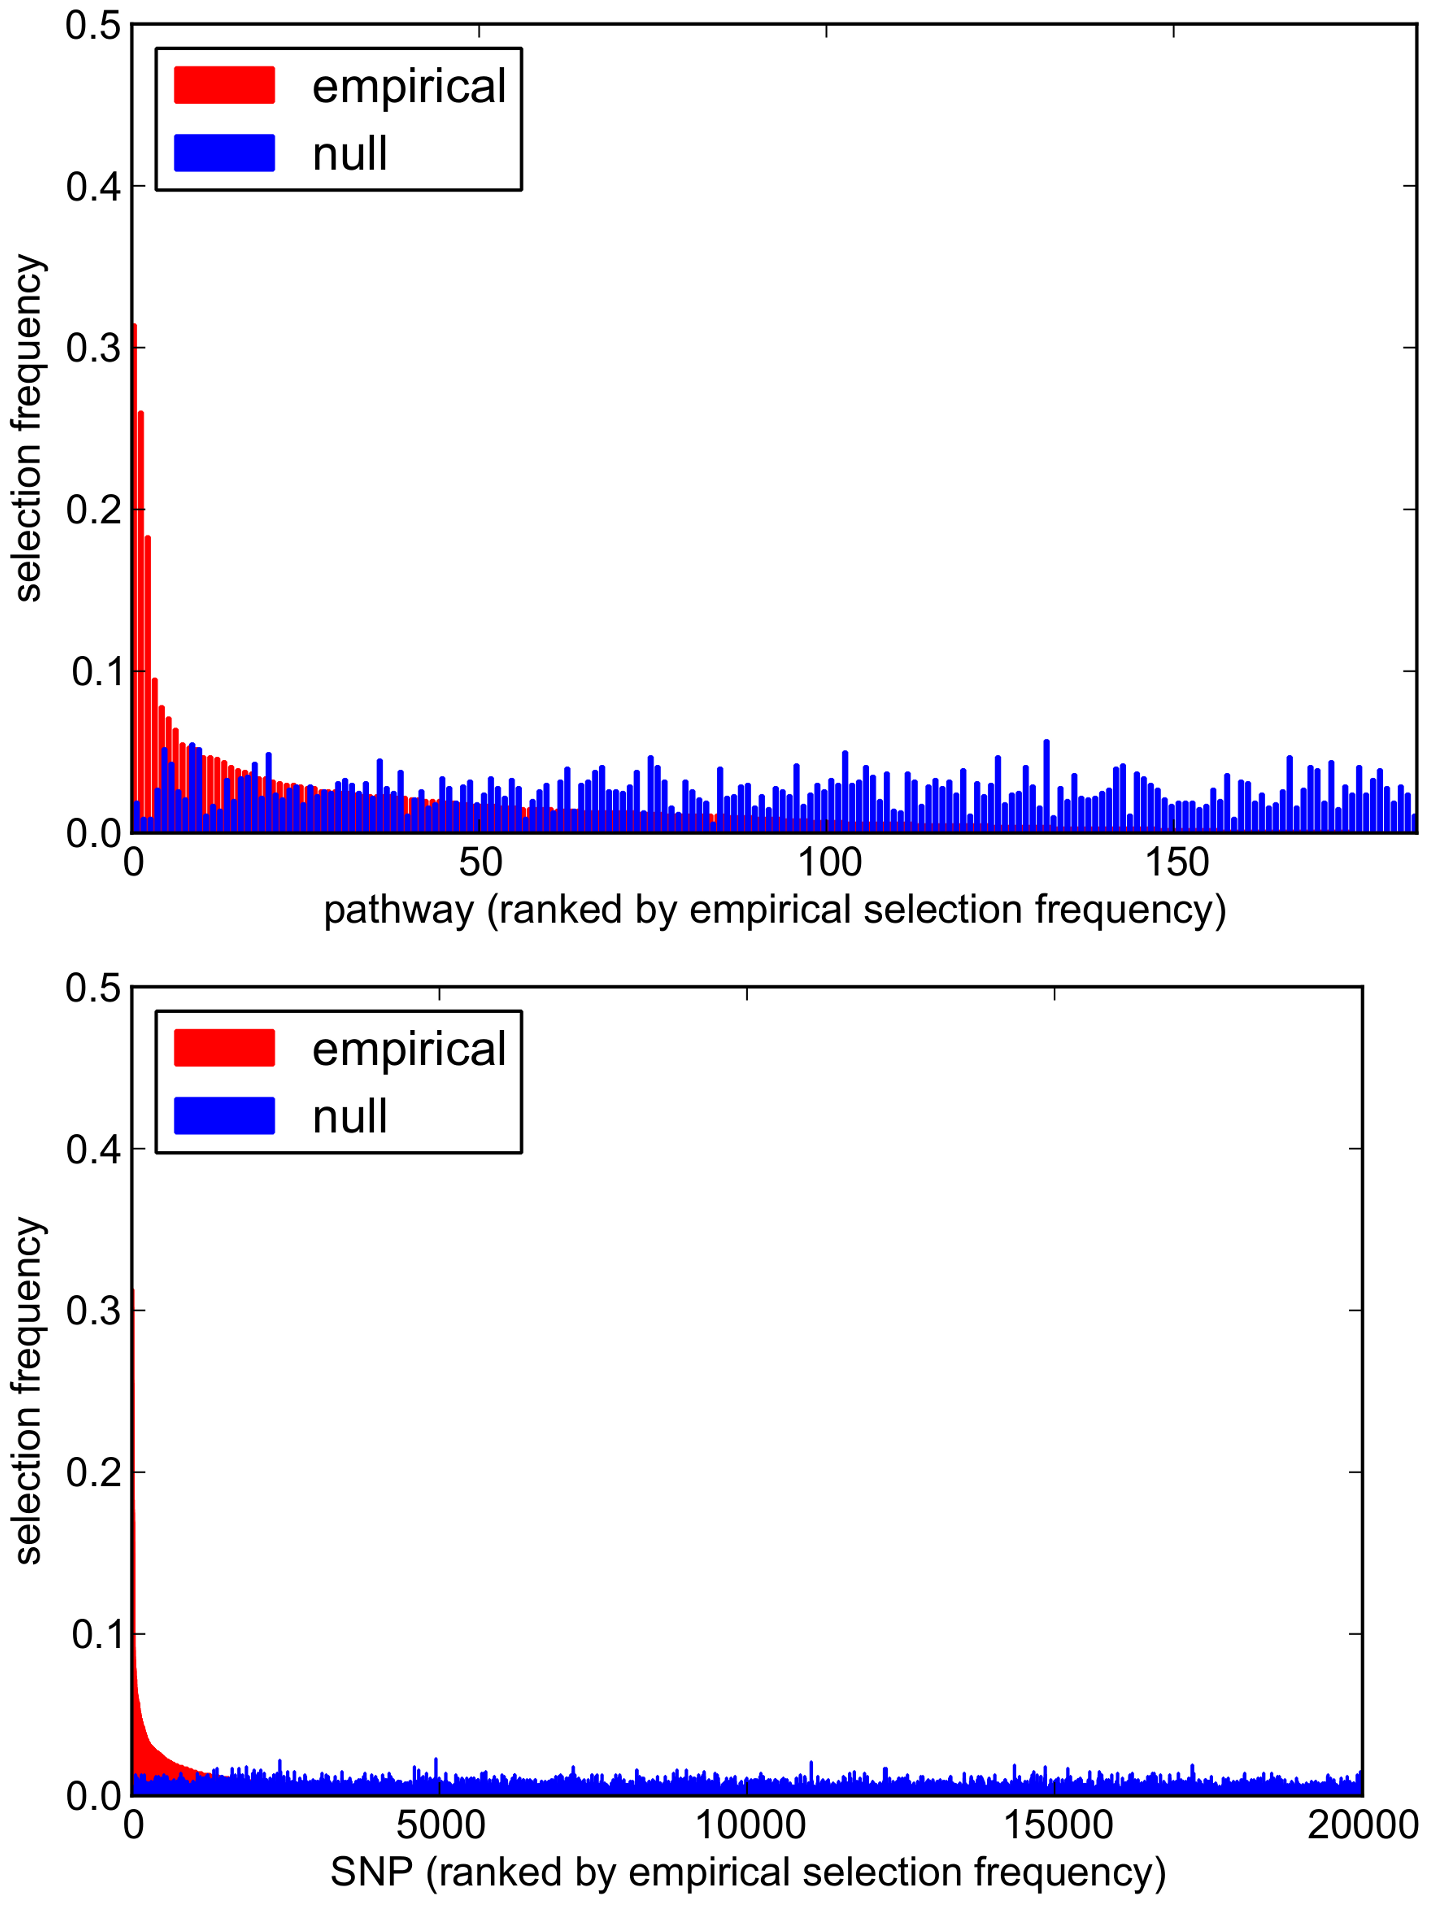 Empirical and null pathway (<i>top</i>) and SNP (<i>bottom</i>) selection frequency distributions for the SiMES dataset.